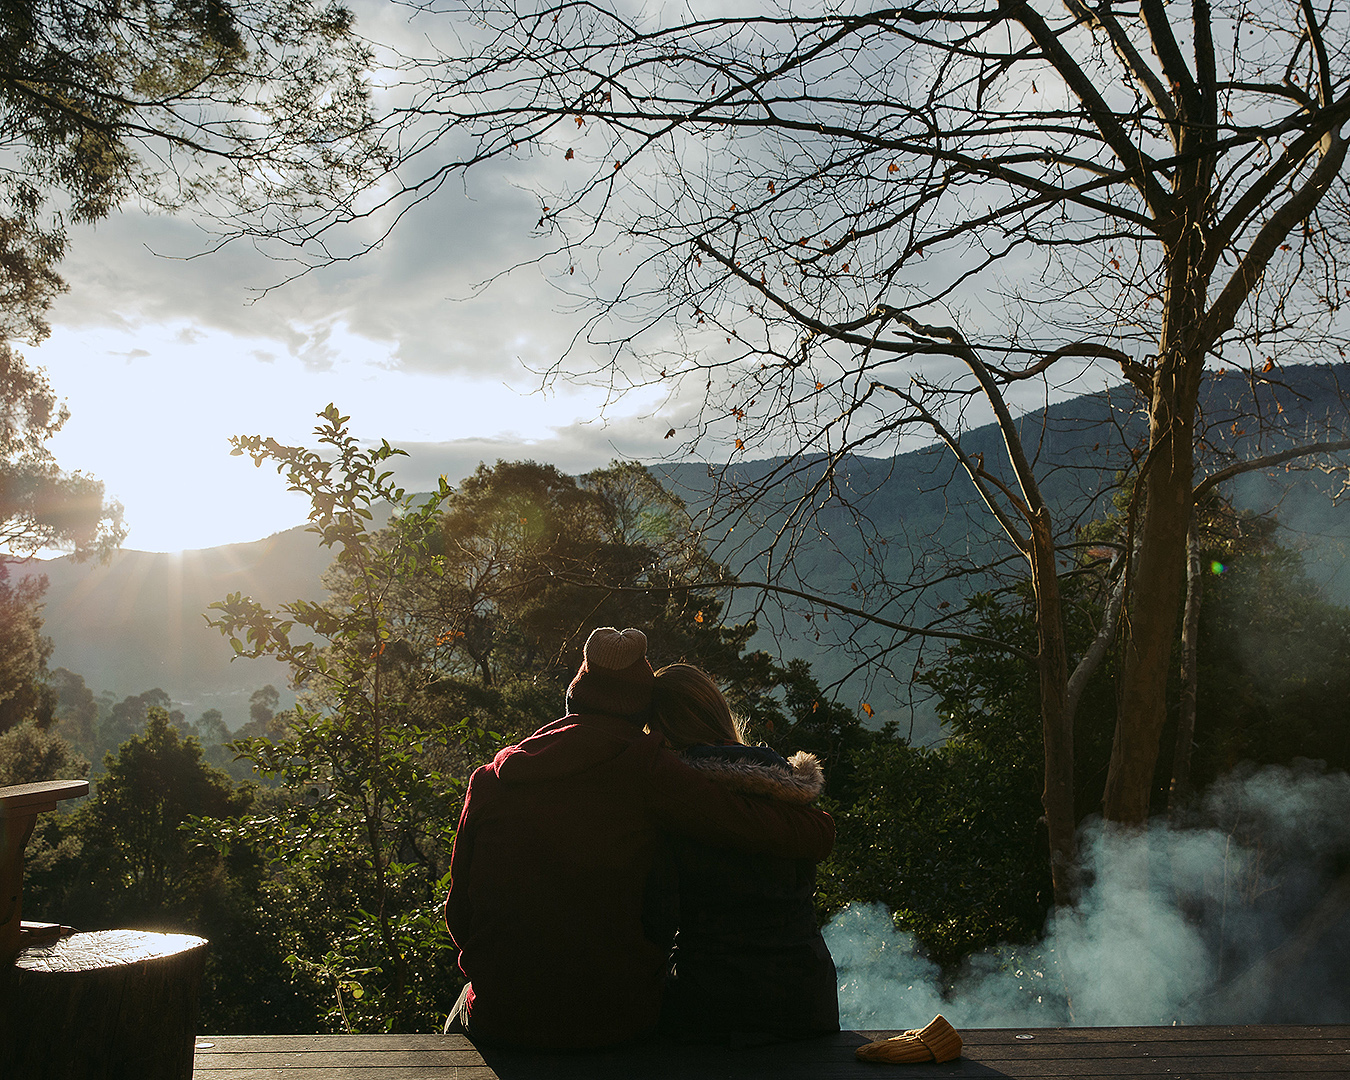 A couple have a cuddle while looking out at the view.